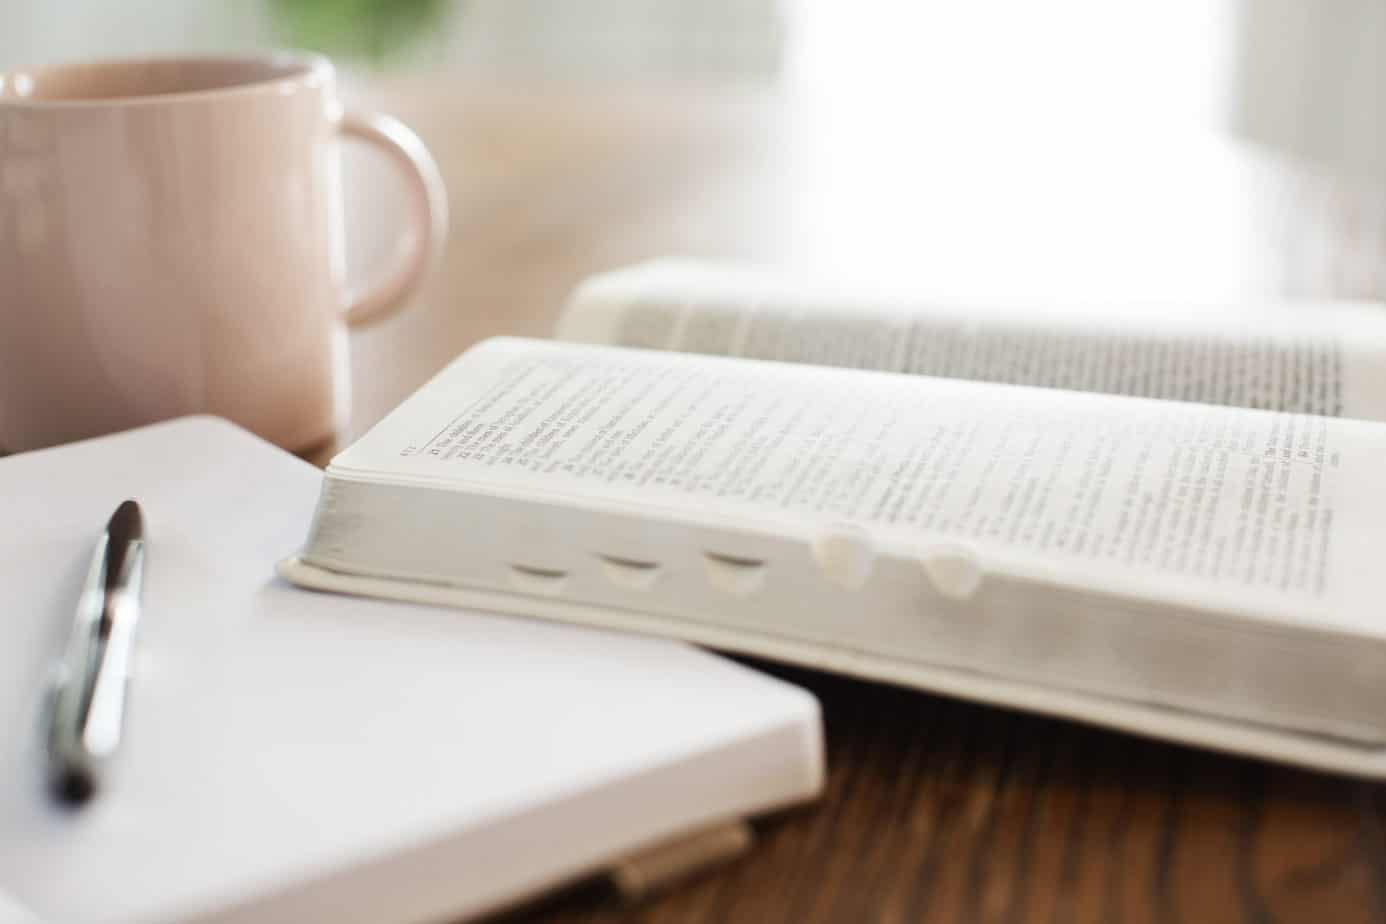 Why is it That Important to Memorize the Scriptures?